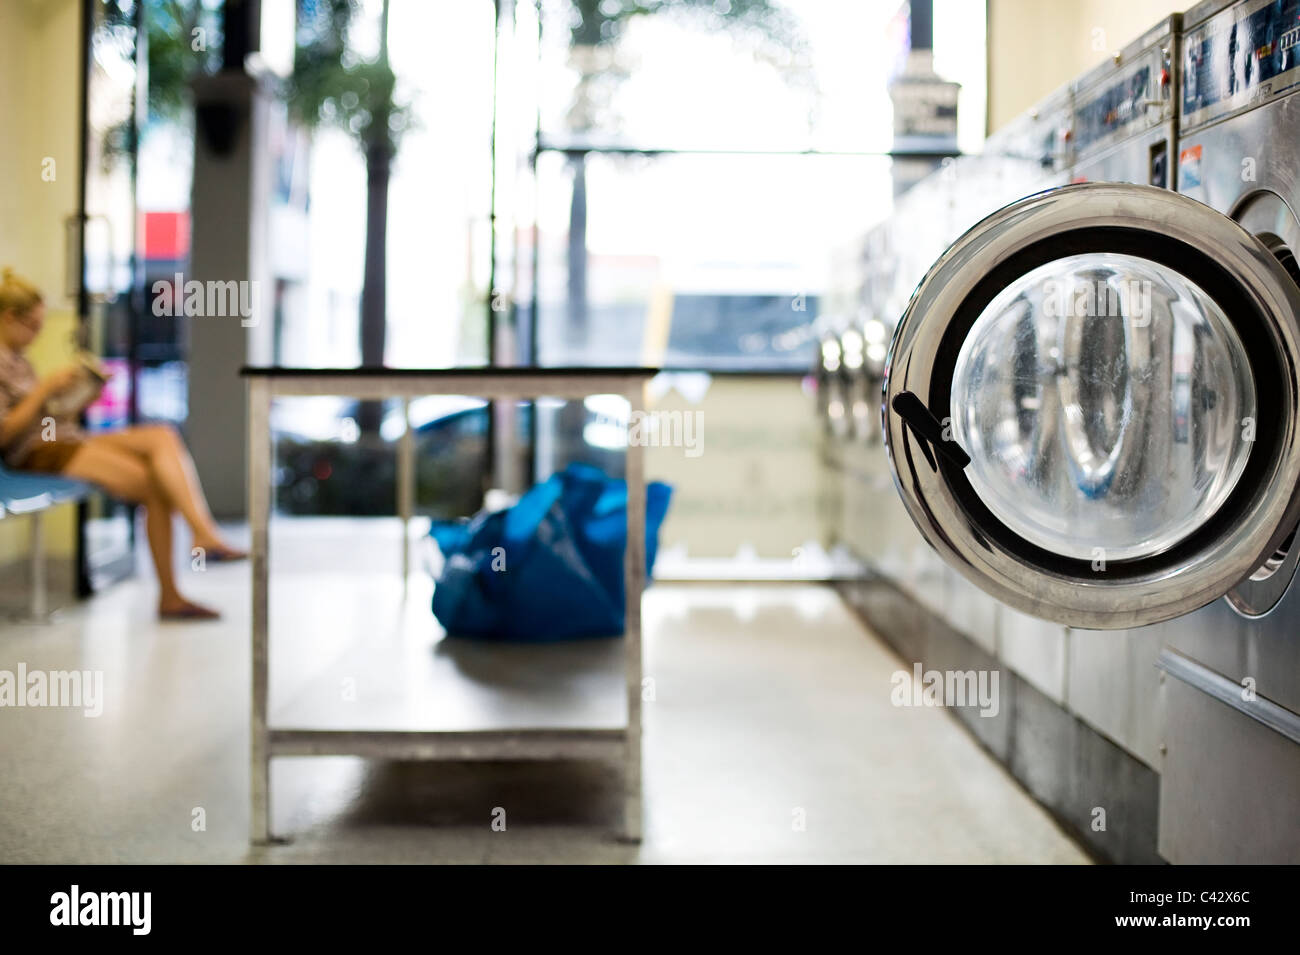 Girl waiting in laundromat - Stock Image